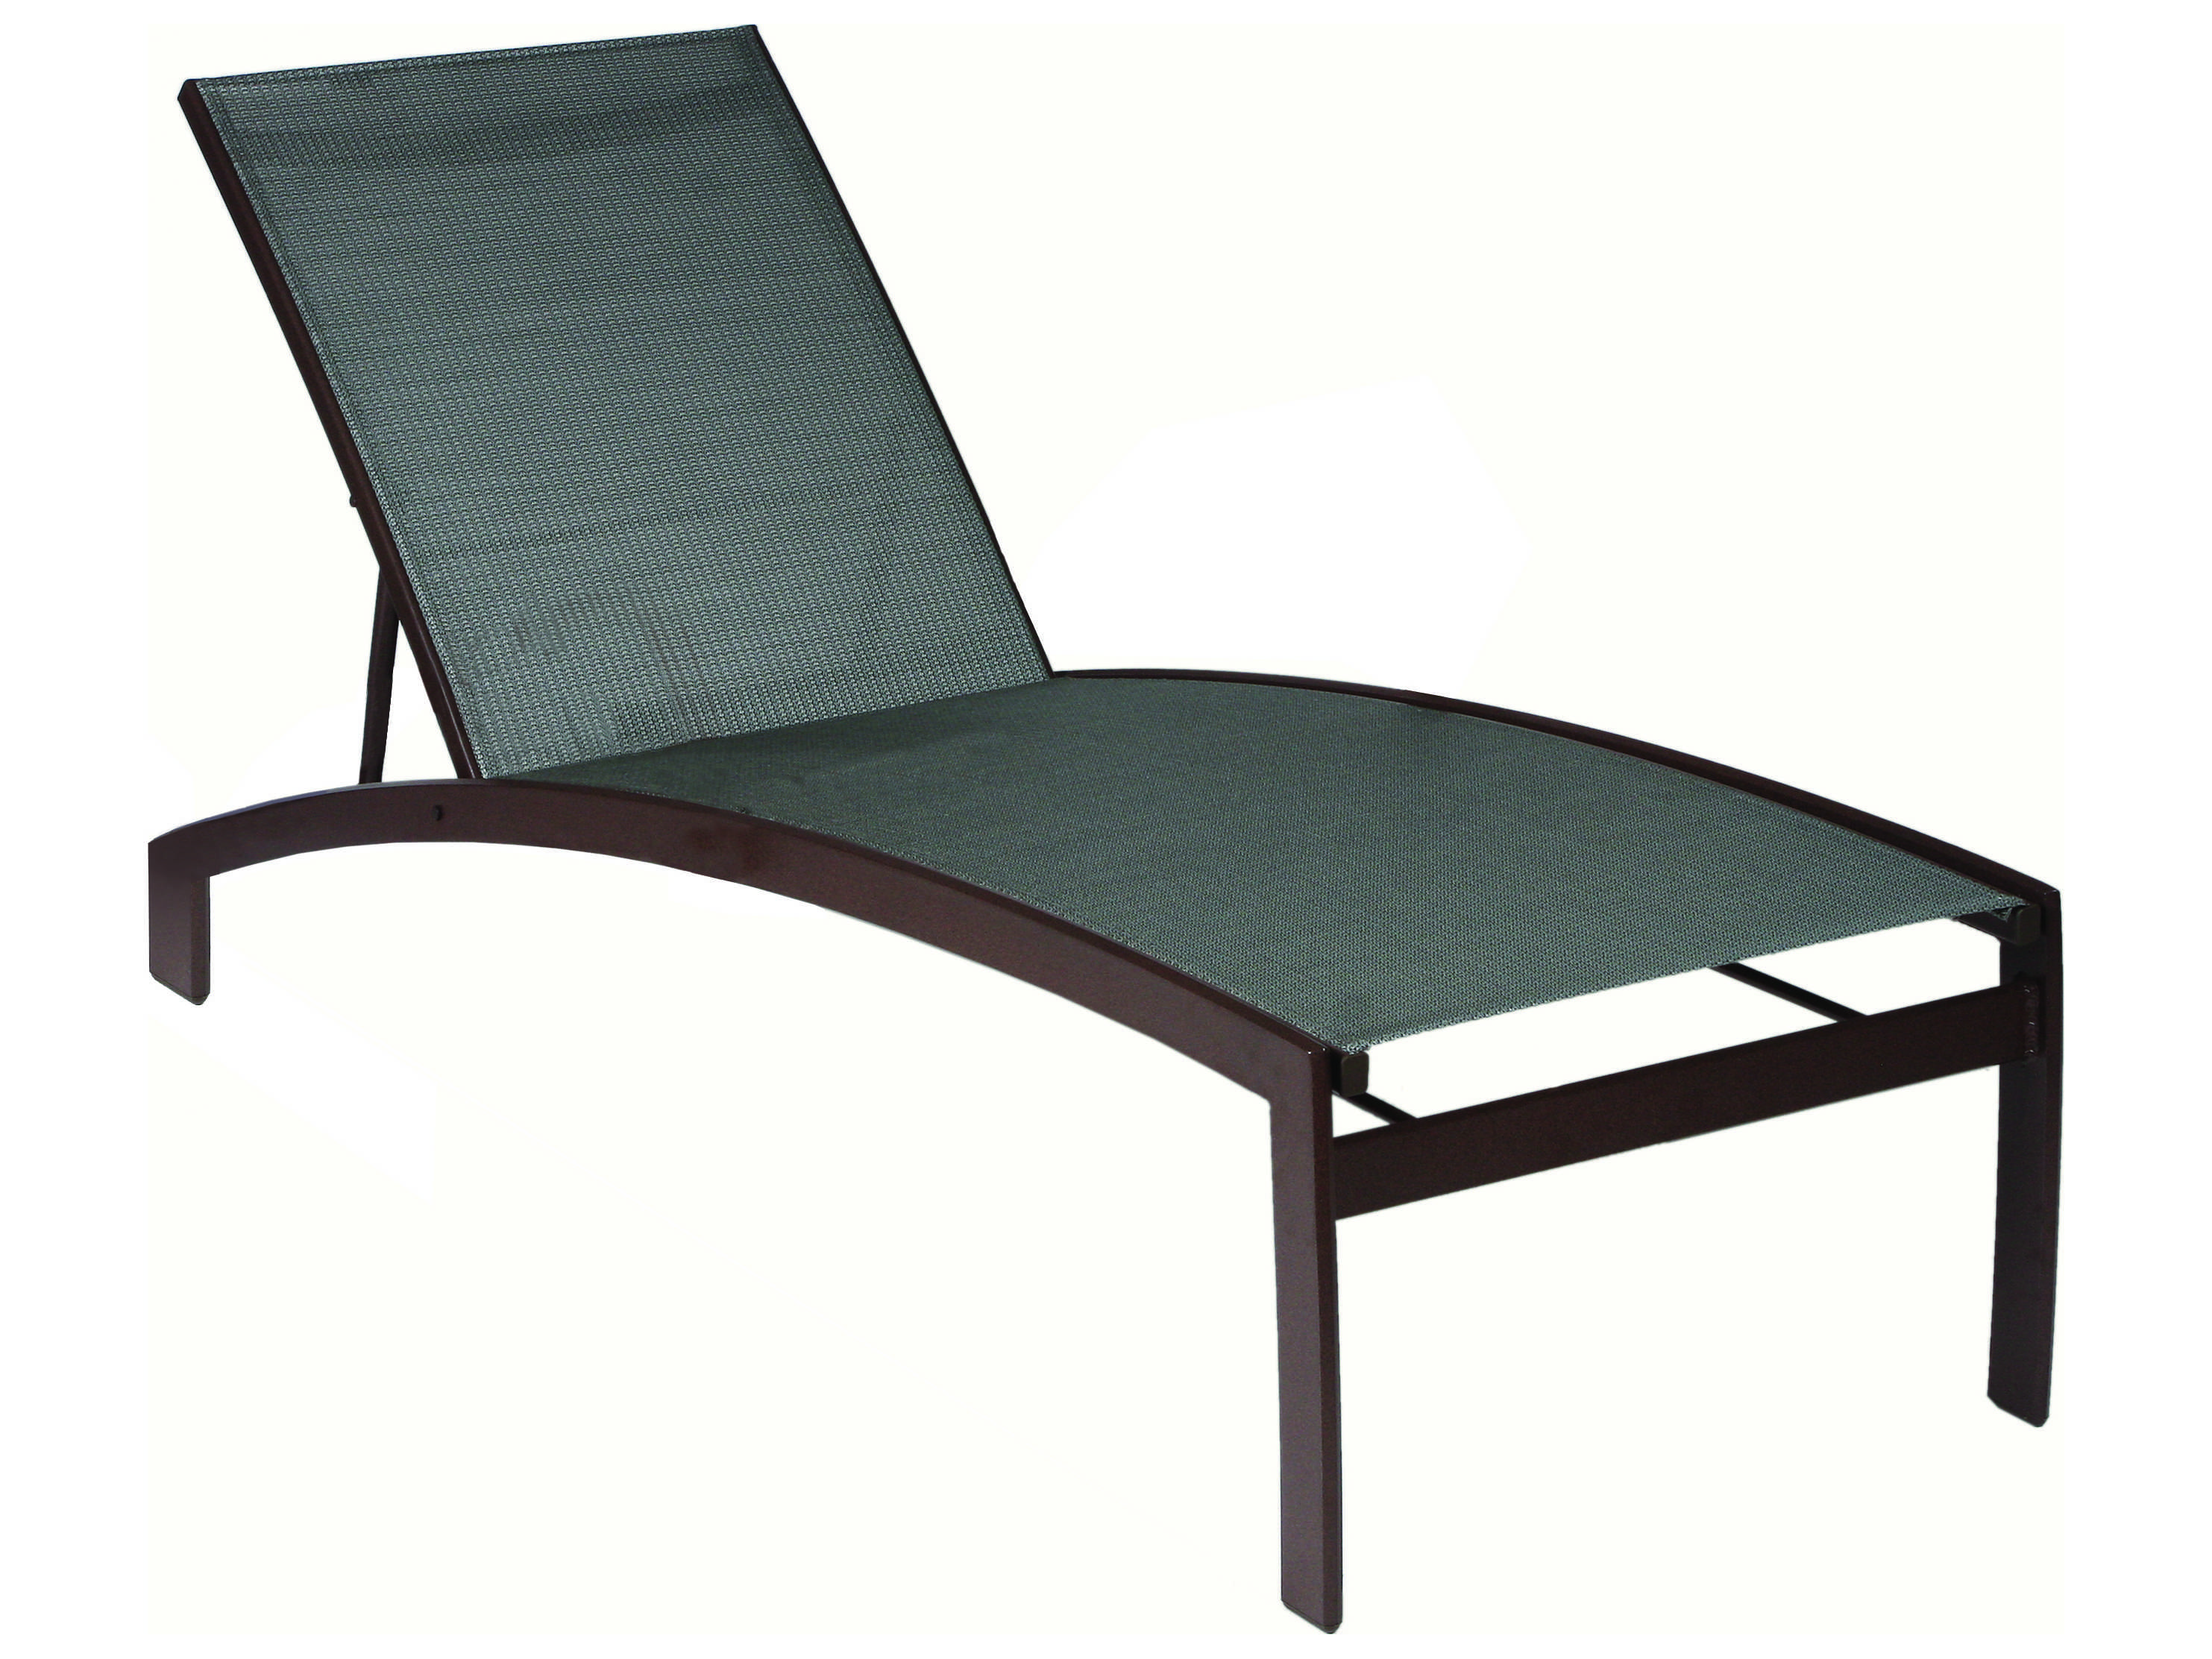 Suncoast vision sling cast aluminum chaise lounge 7993 for Aluminum chaise lounges